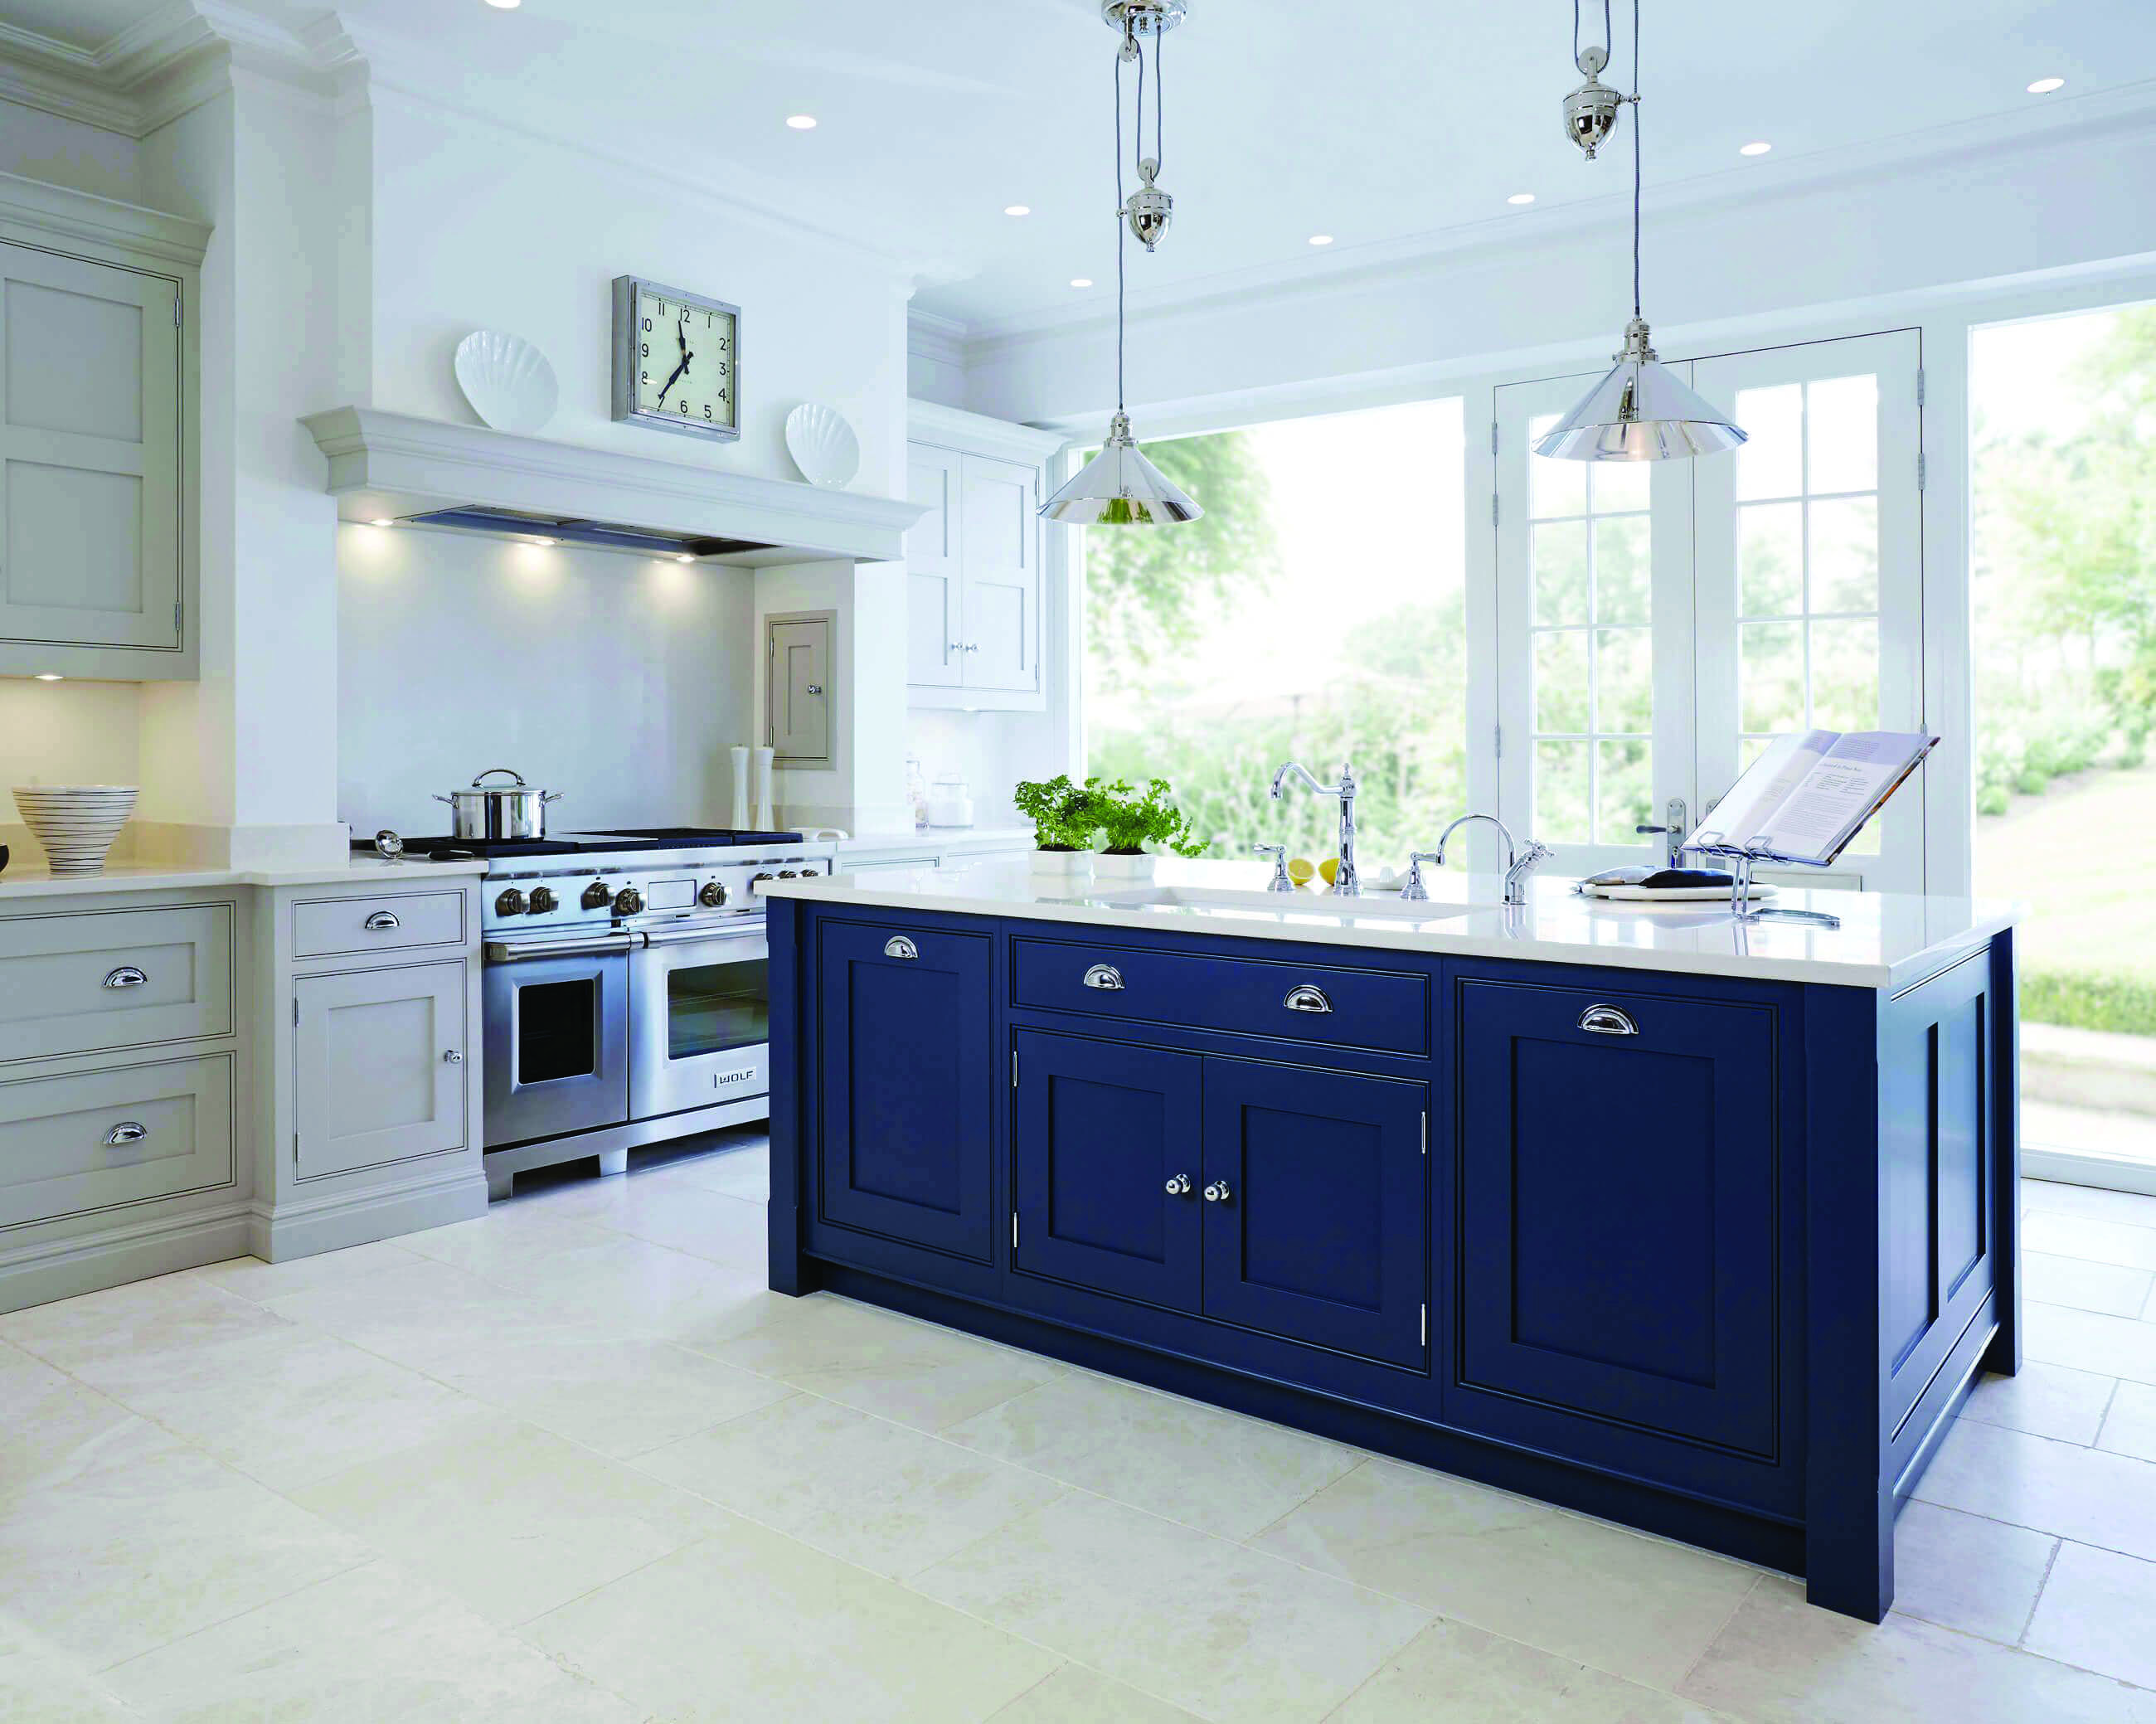 leading fad in kitchen cabinetry style homes tre blue kitchen designs blue kitchen cabinets on kitchen cabinets blue id=60991